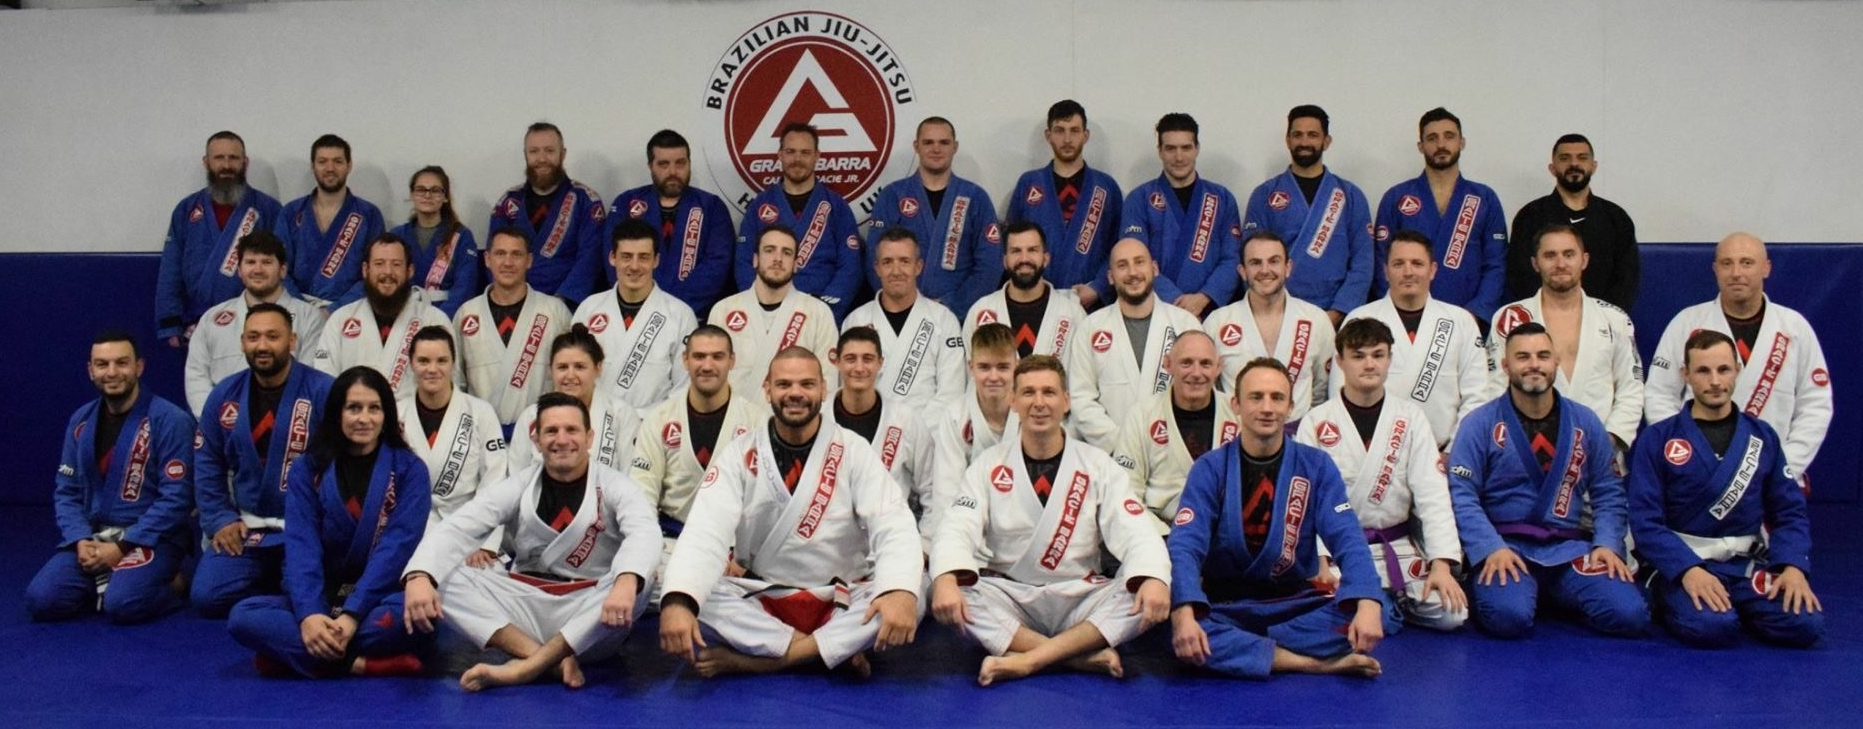 Dedication pays off – World Champion encourages local martial artists